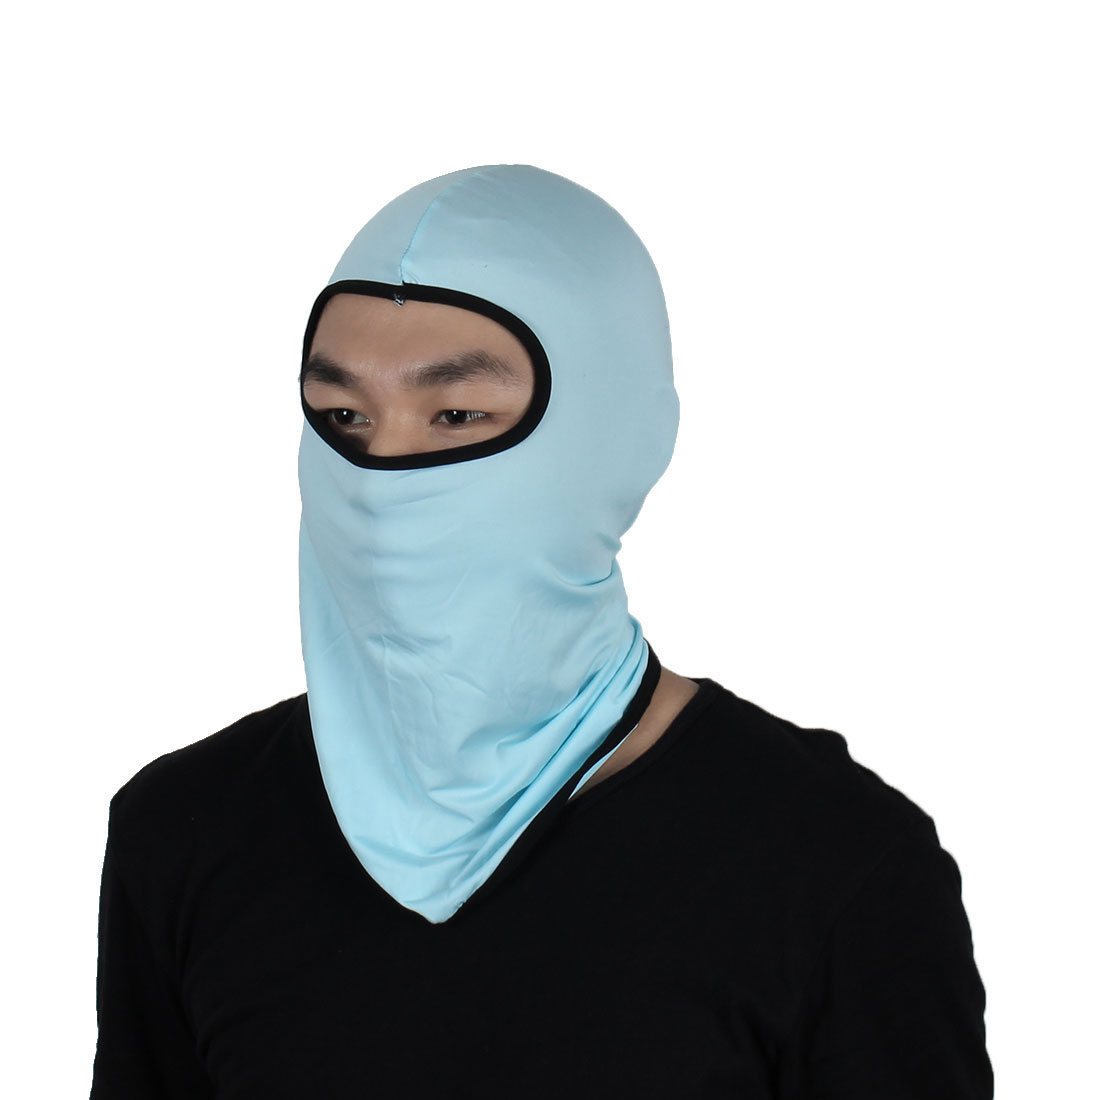 Full Face Mask Outdoor Activities Cycling Biking Neck Hat Helmet Balaclava Blue by Unique-Bargains